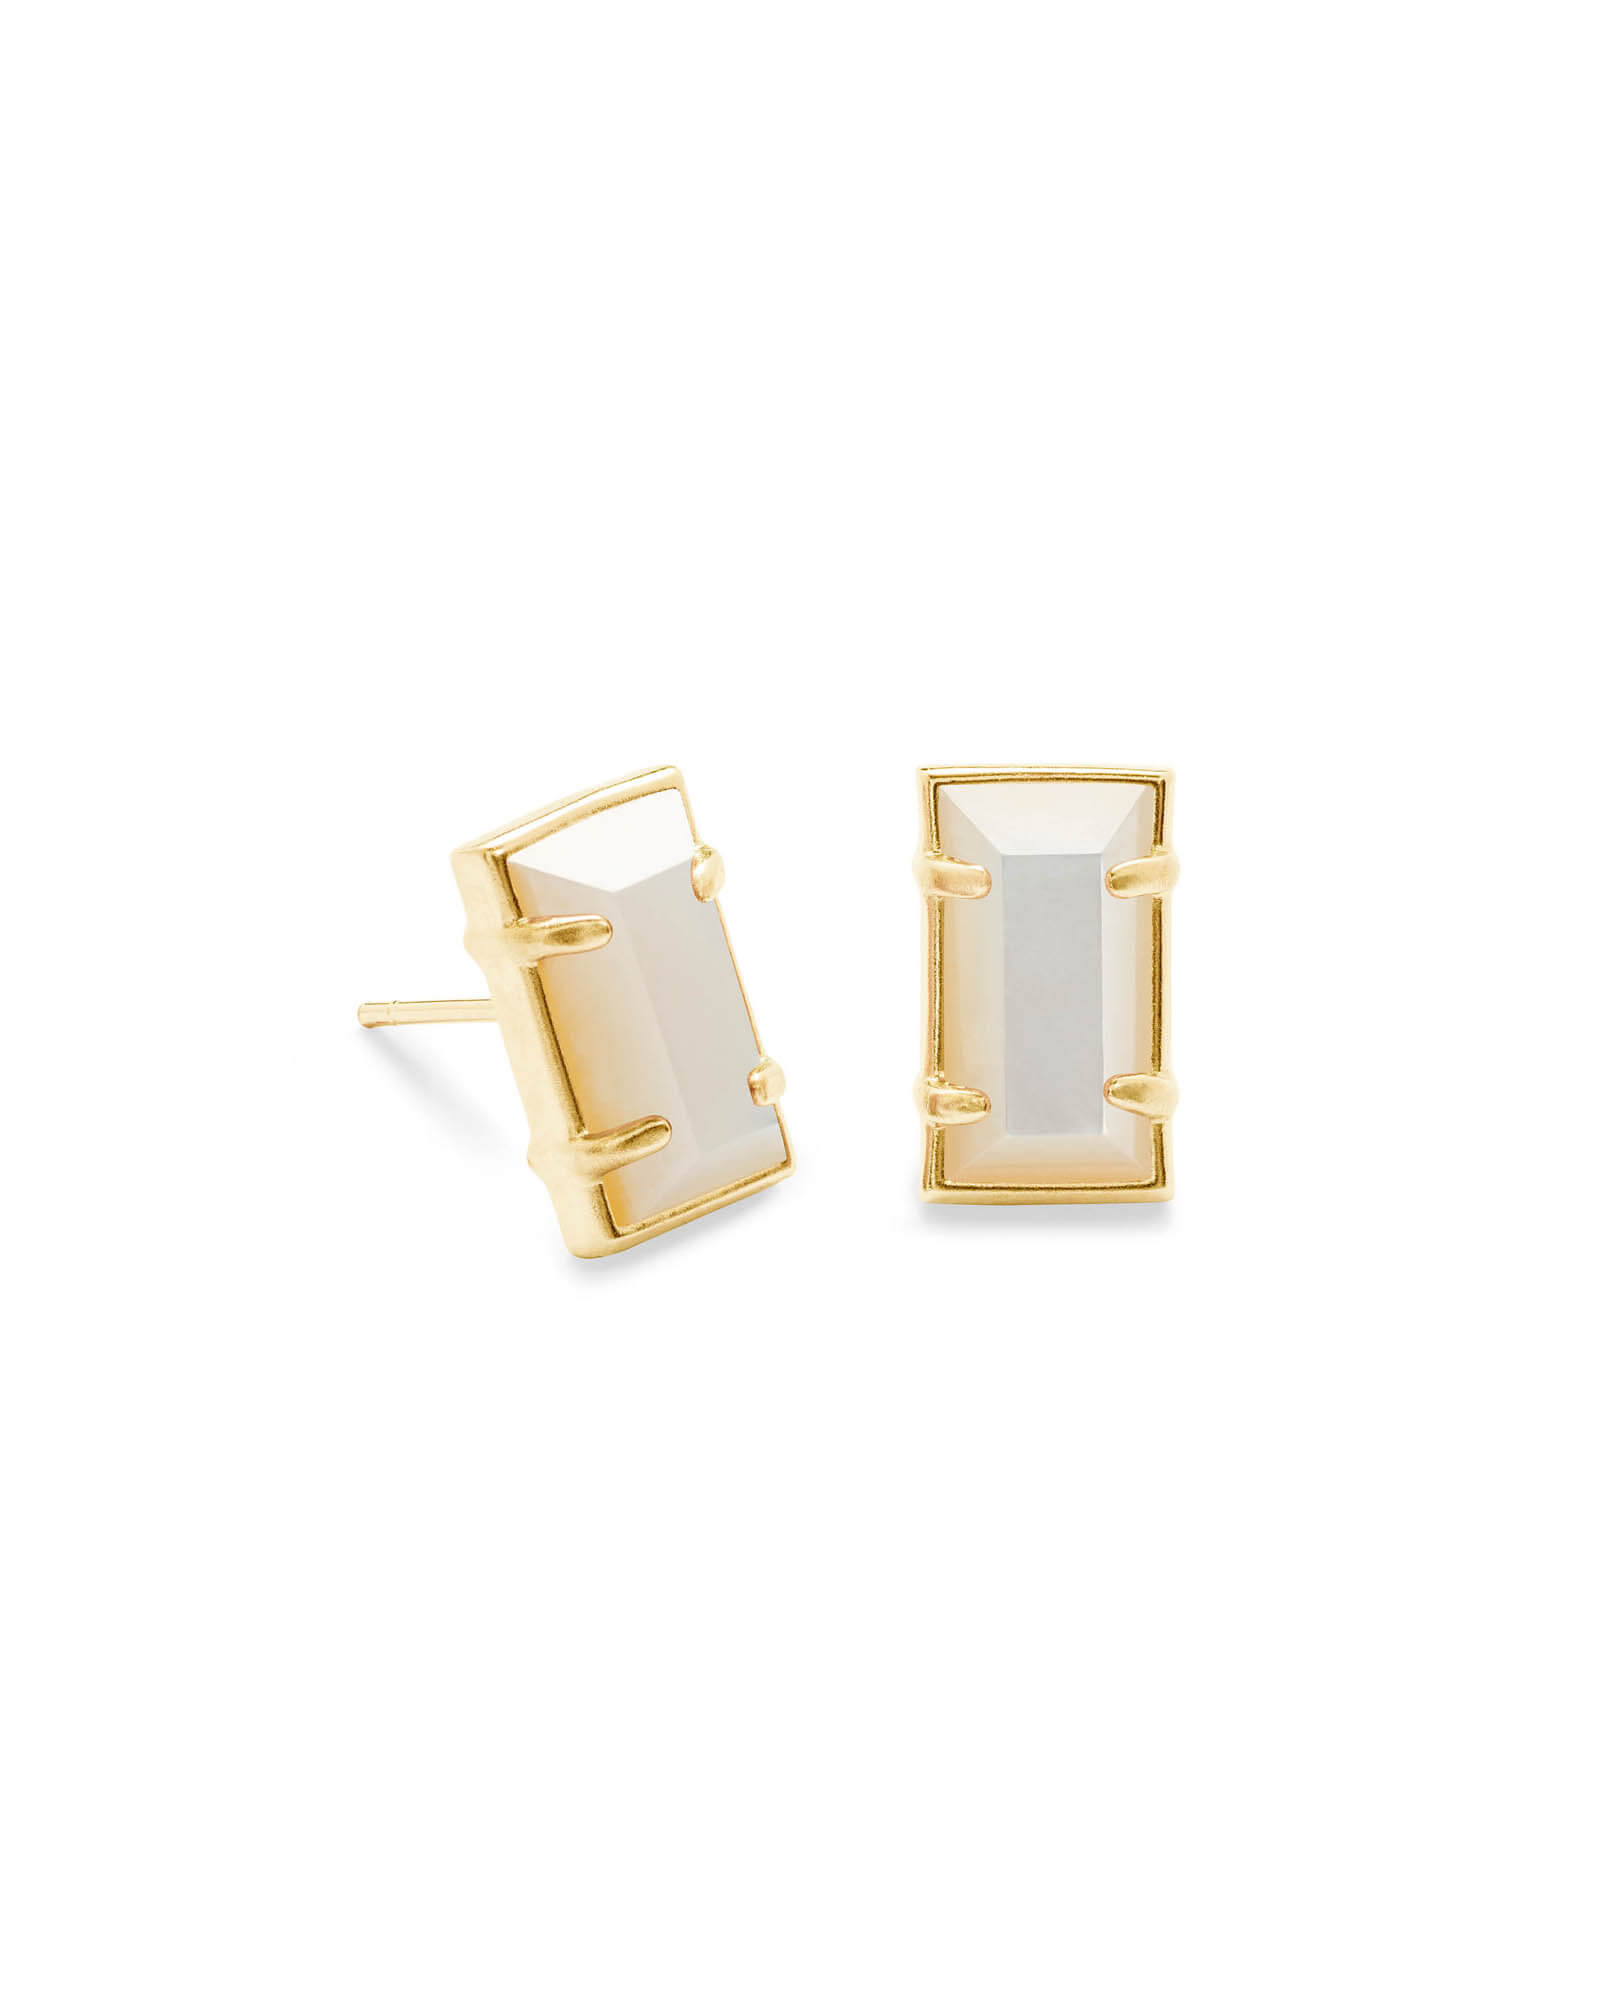 Paola Gold Stud Earrings in Ivory Pearl